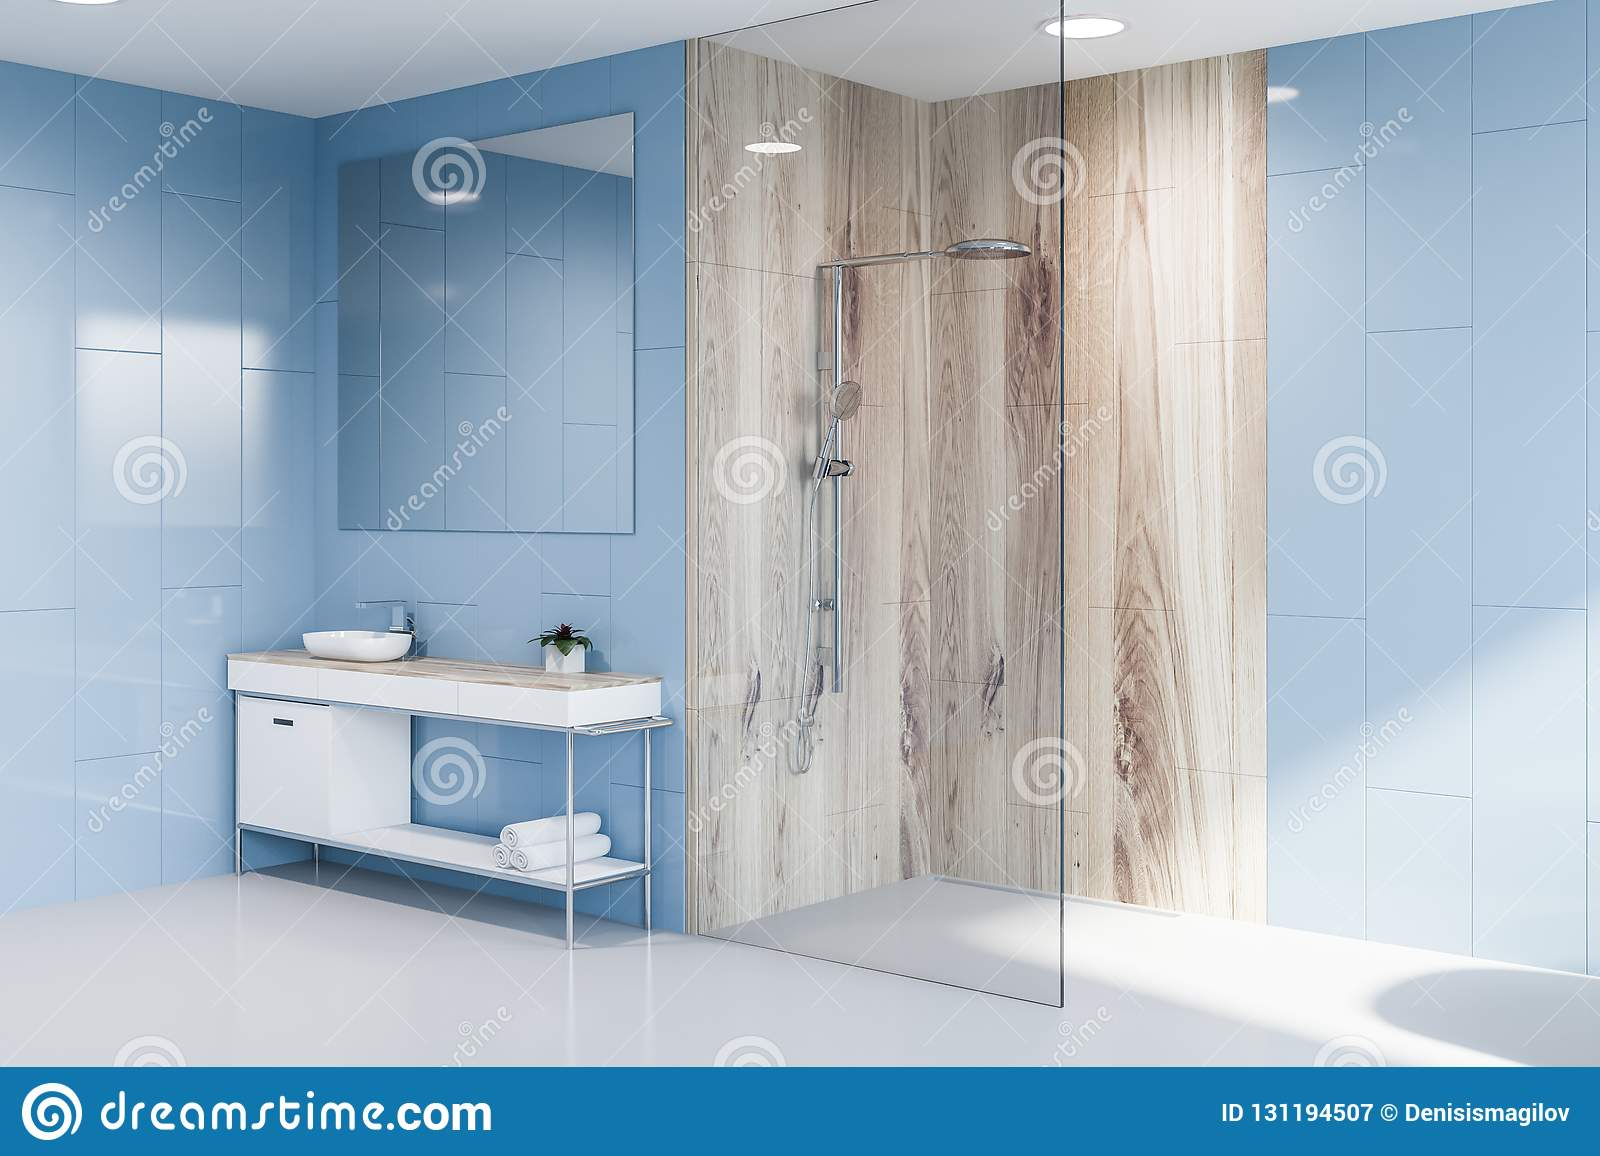 Corner Of Modern Bathroom With Blue Walls, White Floor, Glass And Wooden  Shower And White Sink Standing On White And Wooden Countertop With Big  Square ...